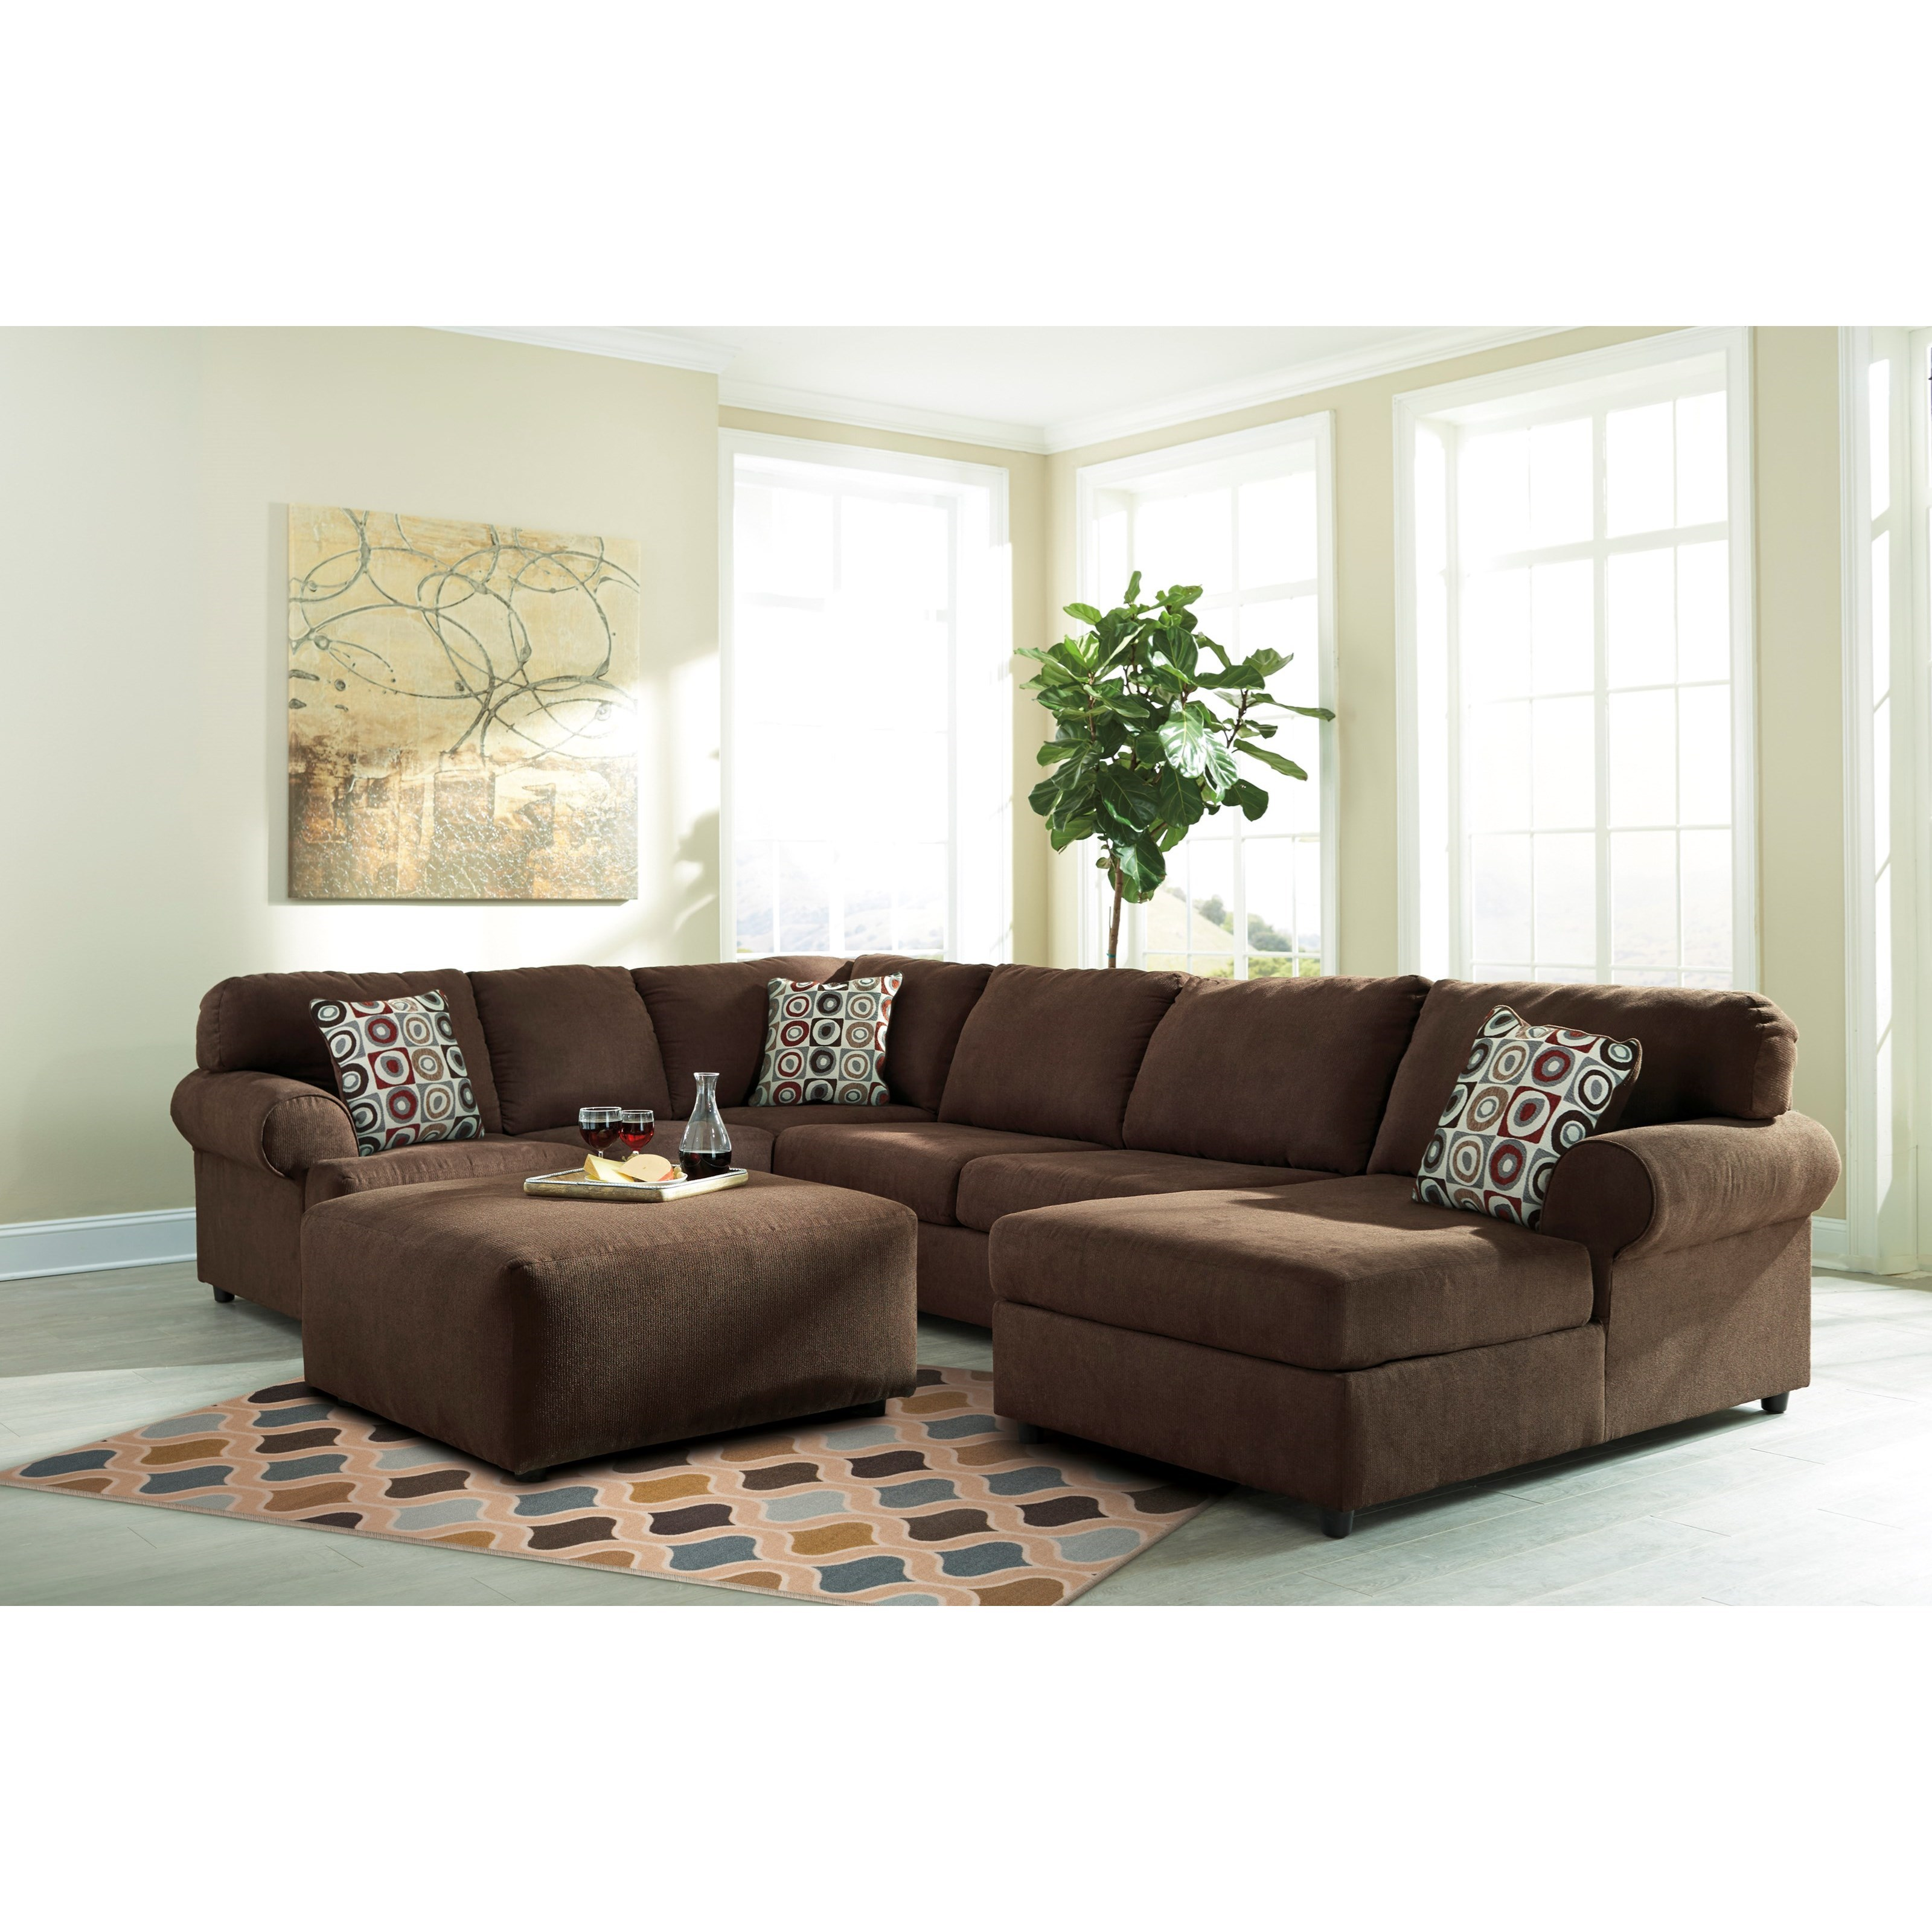 Signature design by ashley jayceon stationary living room for Living room furniture groups